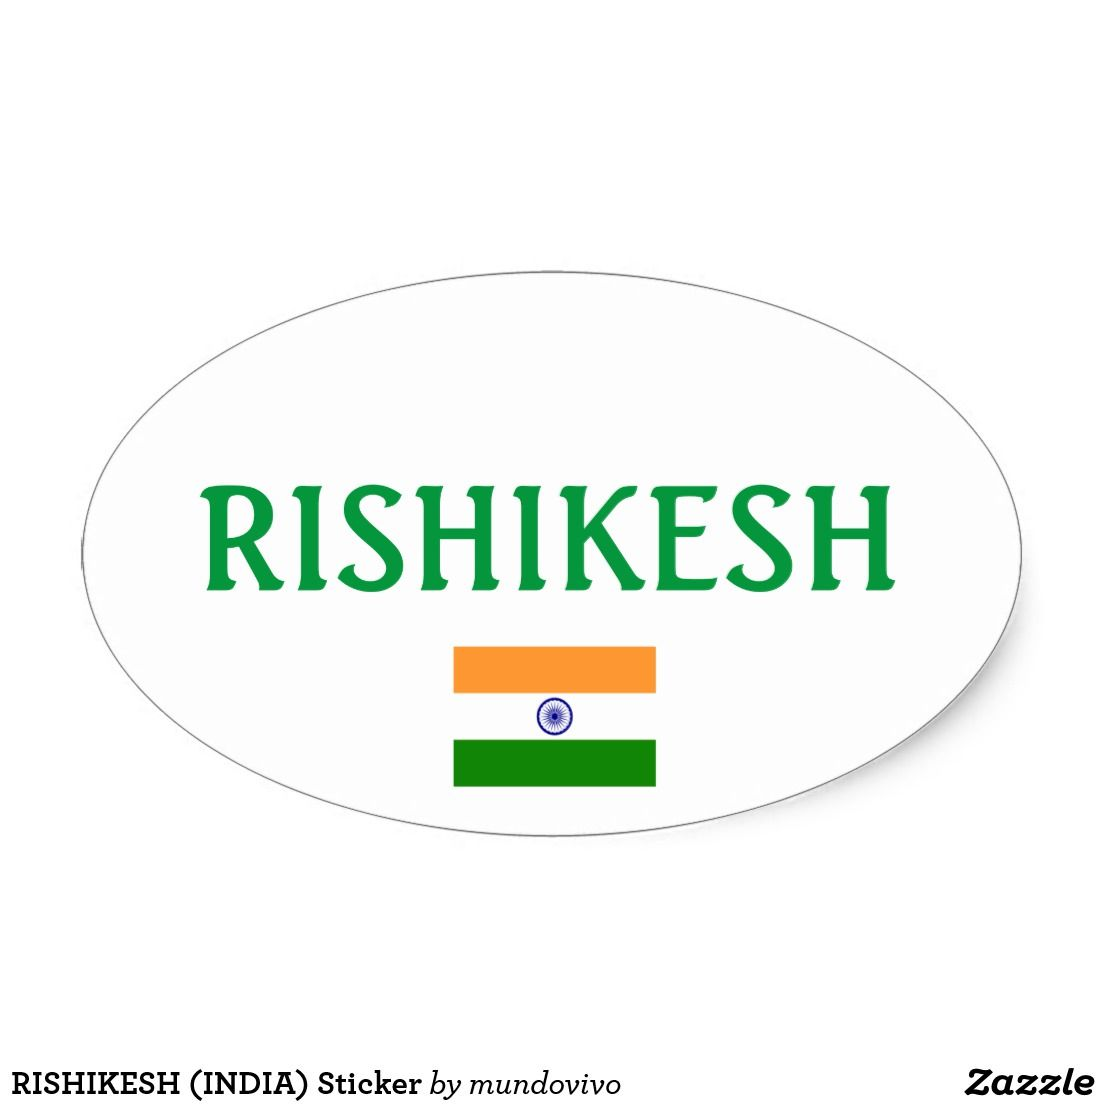 Rishikesh india sticker